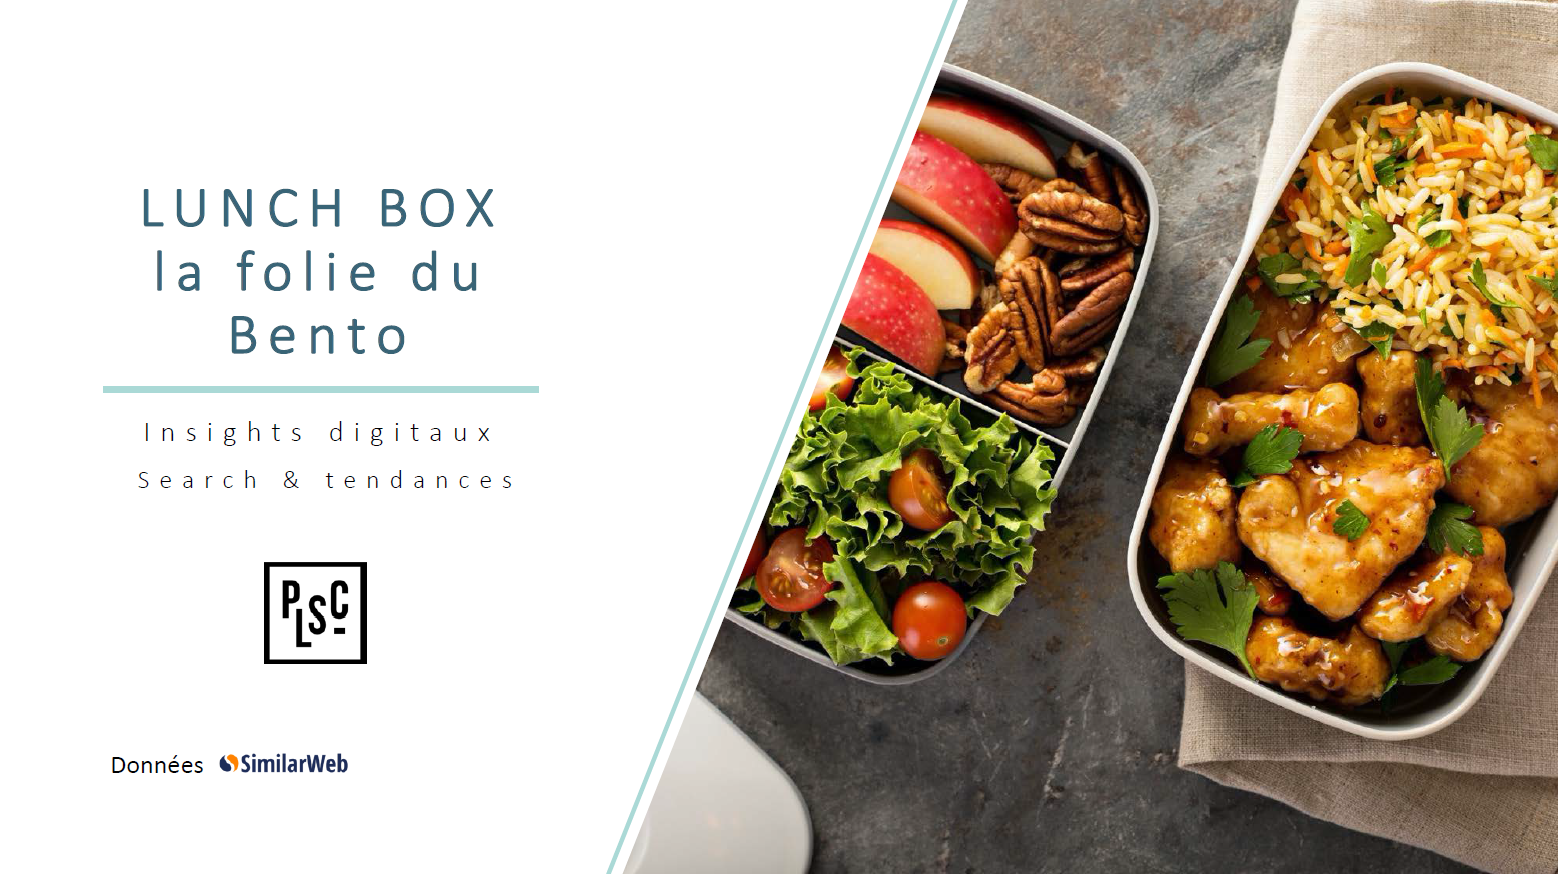 Lunch box marché